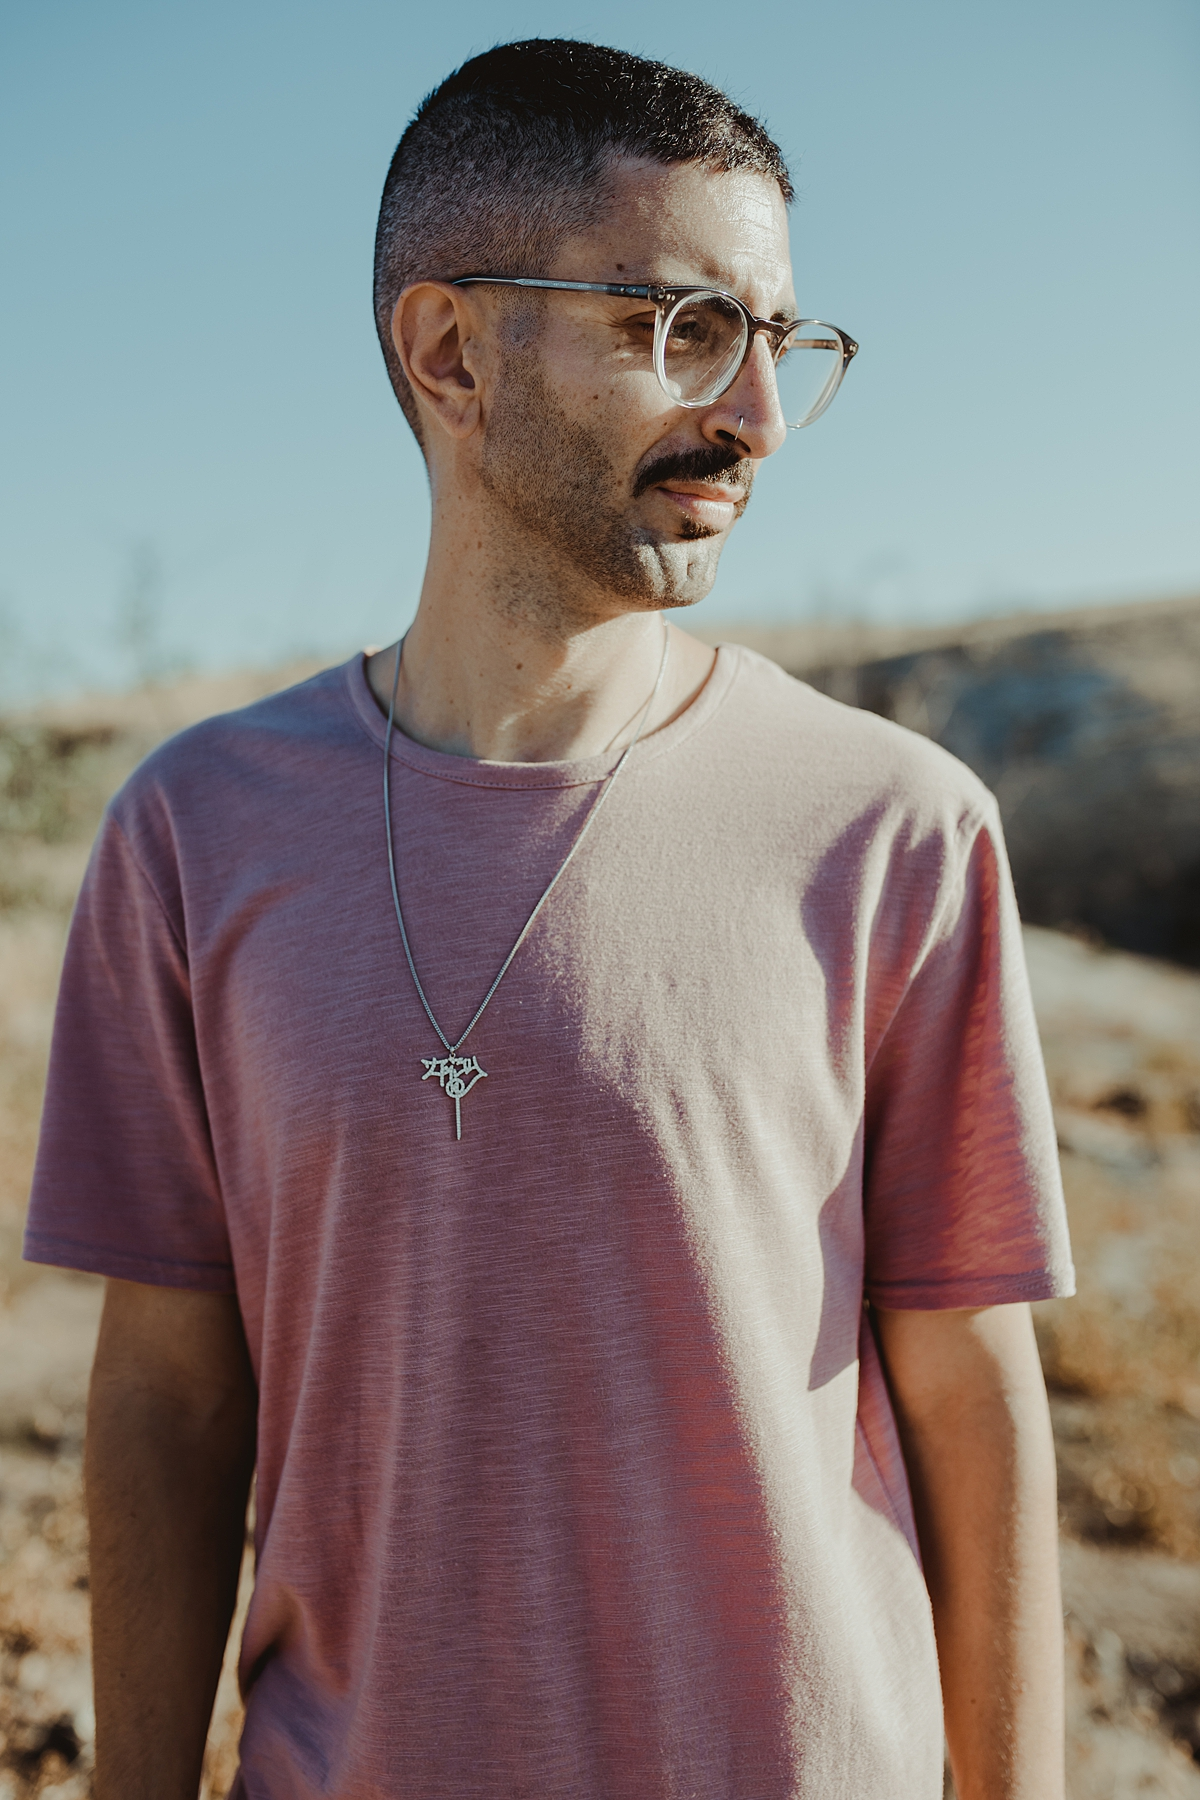 Orange County family photographer. portrait of man in pink shirt and silver necklace standing atop the hills at Irvine Regional Park Orange County